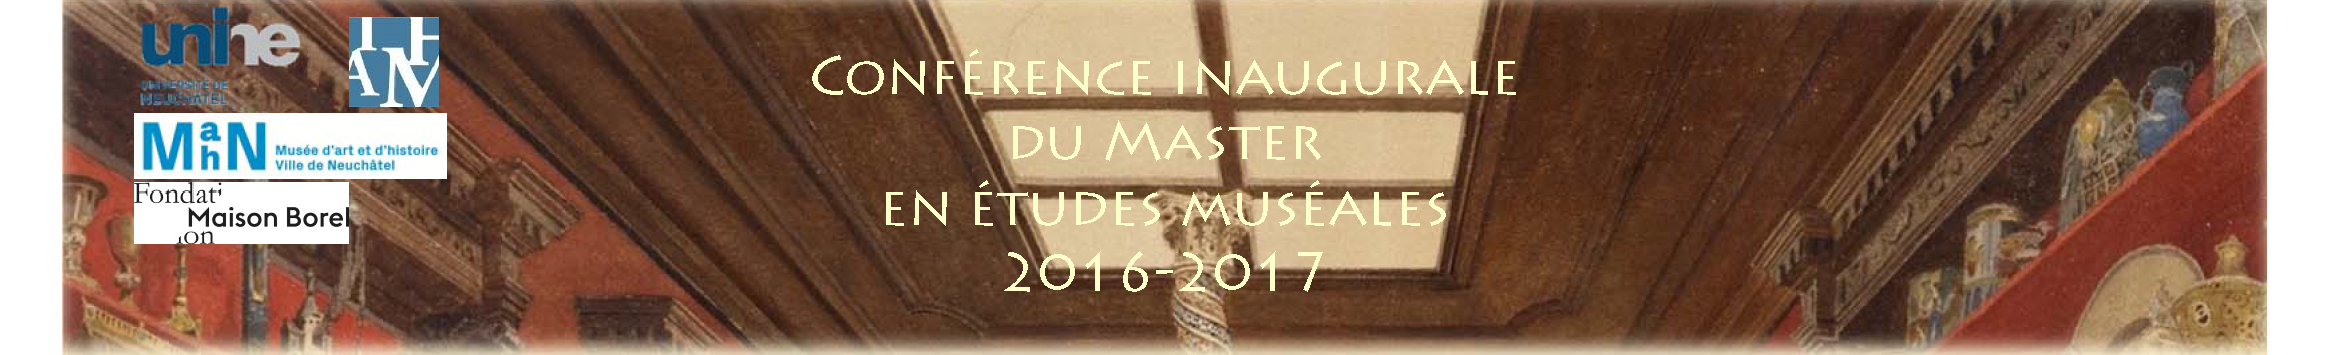 Conférence_inaugurale_MA_MS_2016-2017_vignette.png